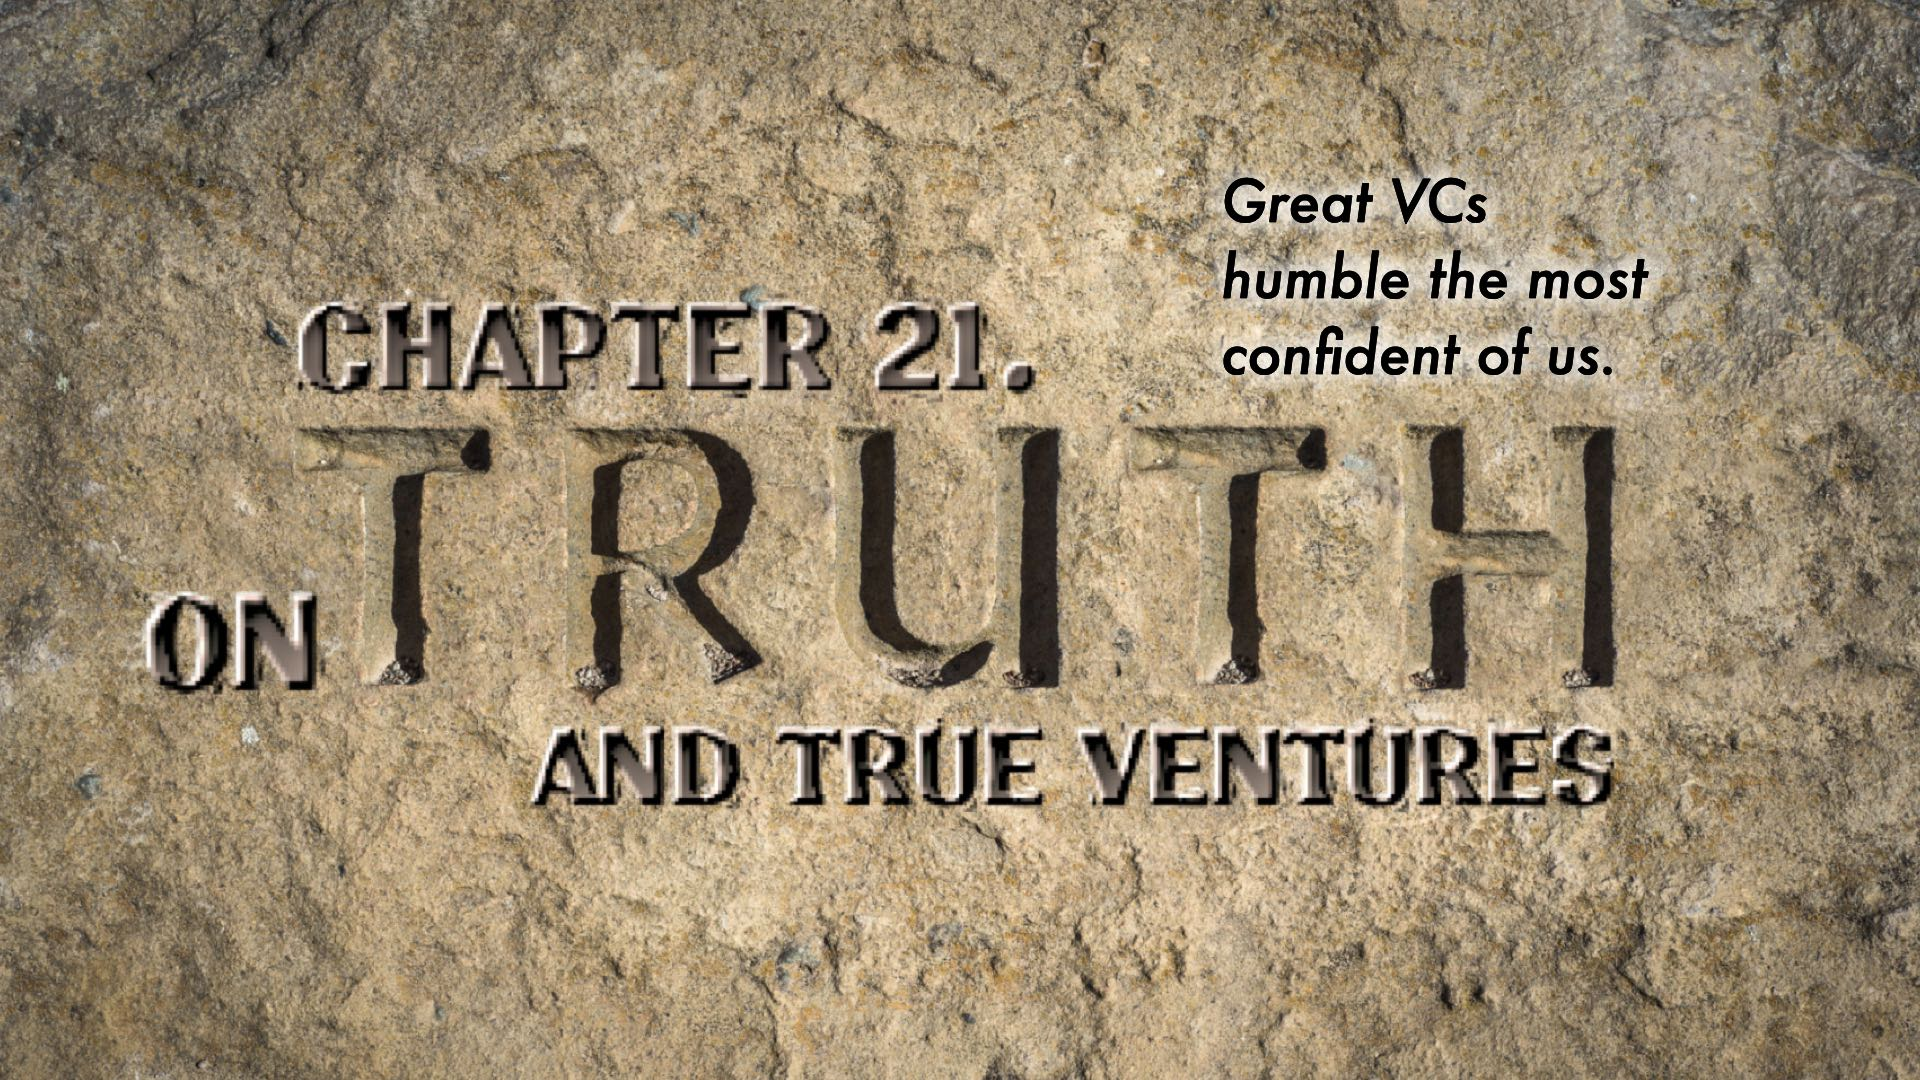 On Truth and True Ventures